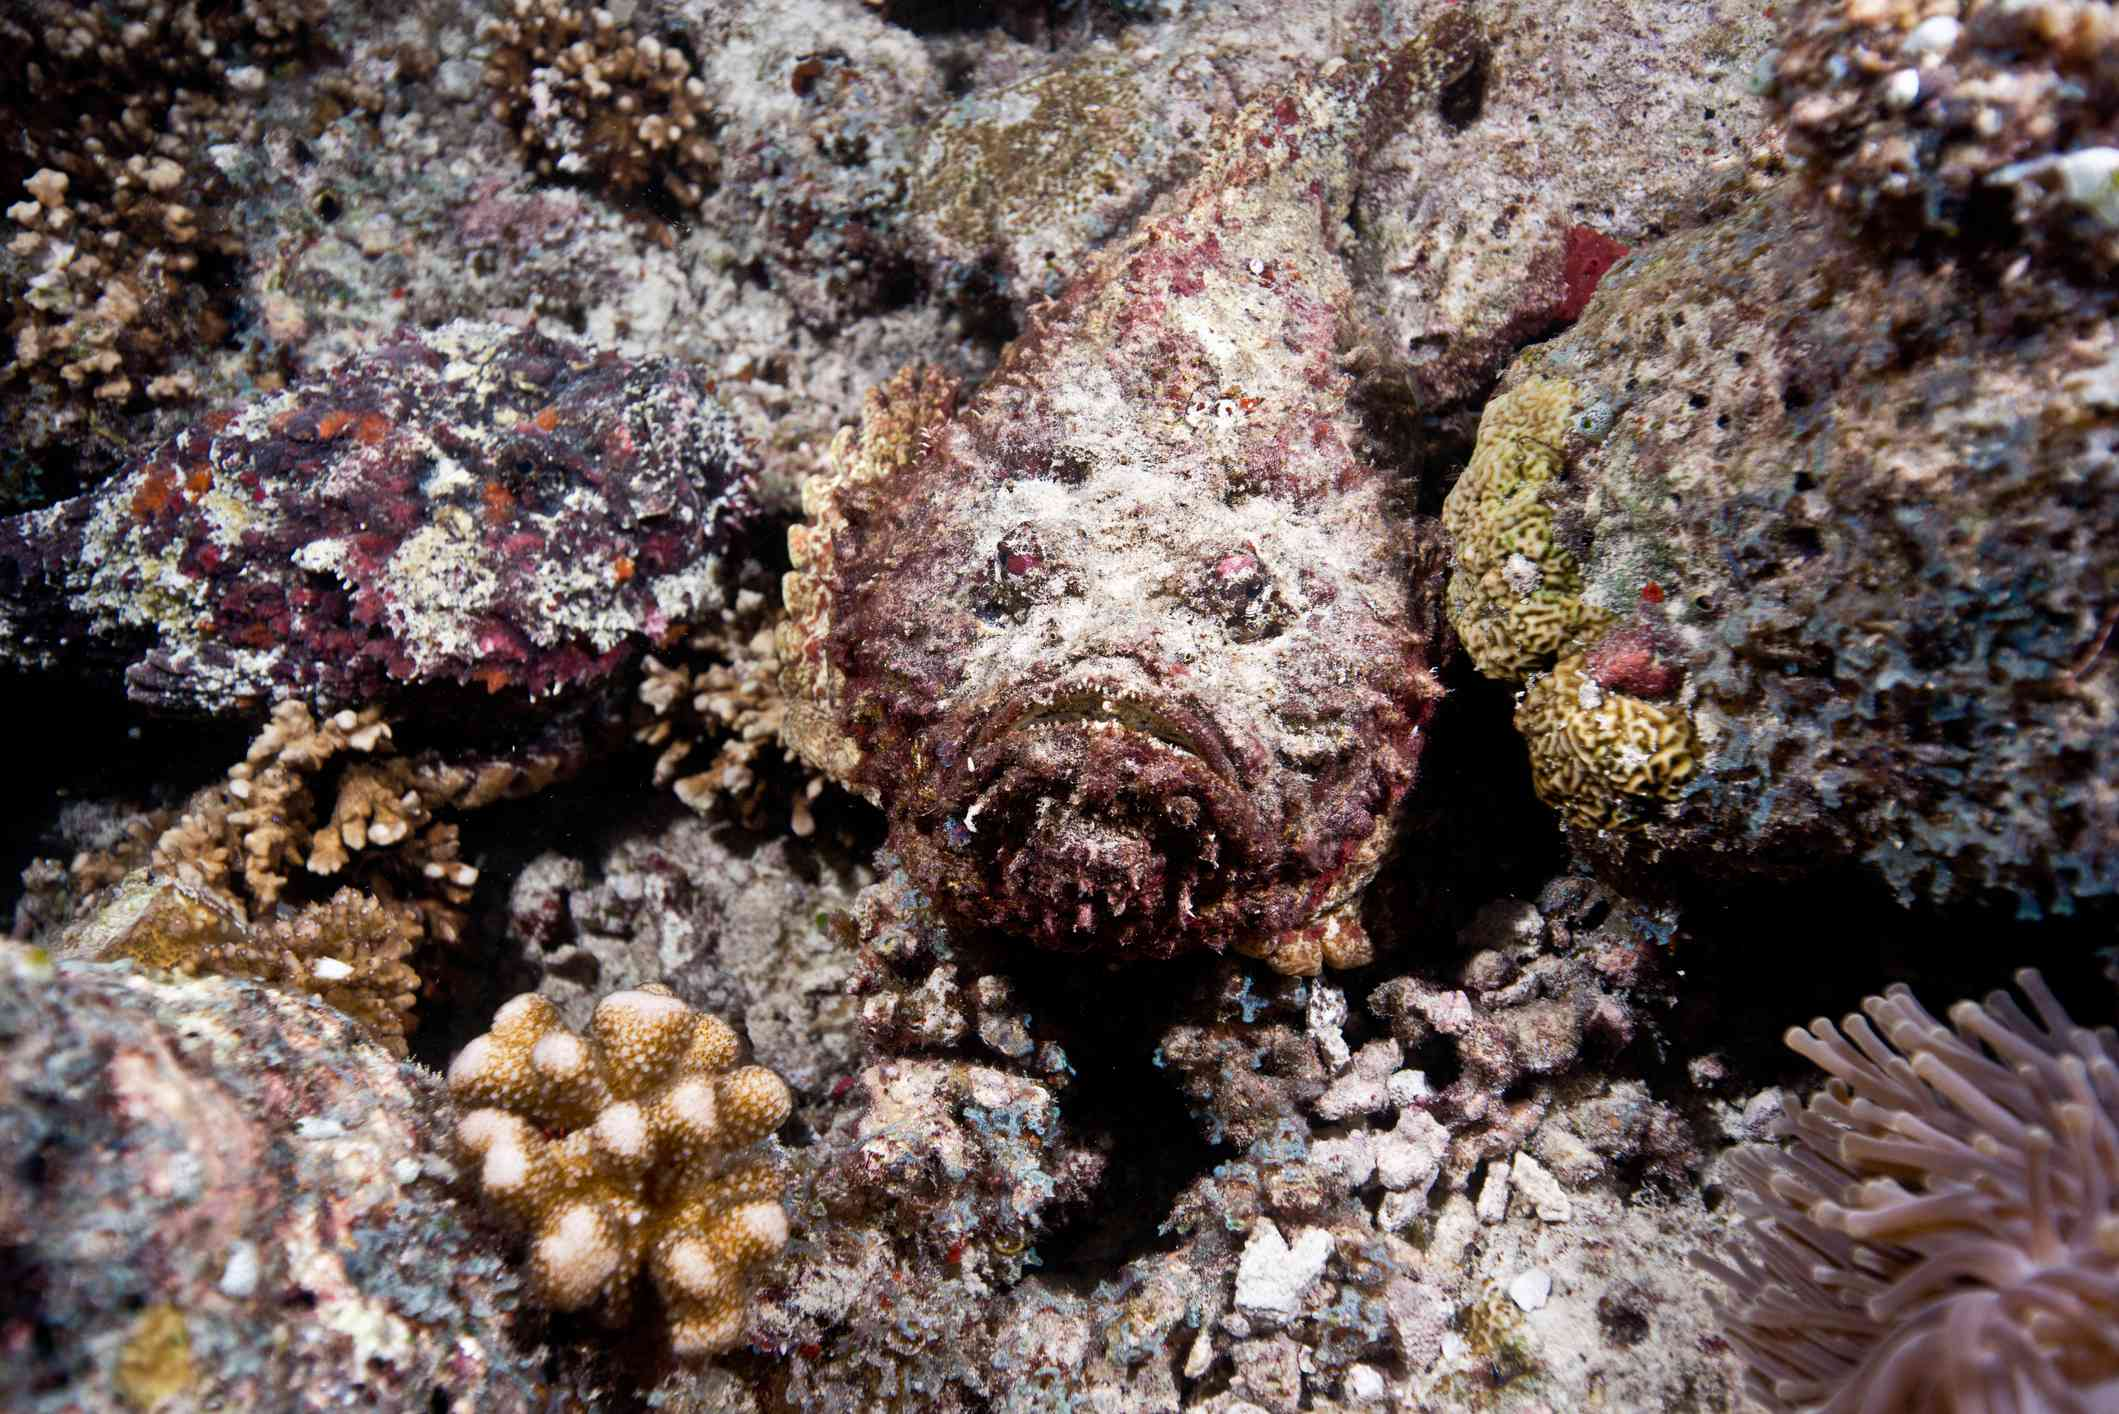 Stonefish hiding among red, gold, and green coral